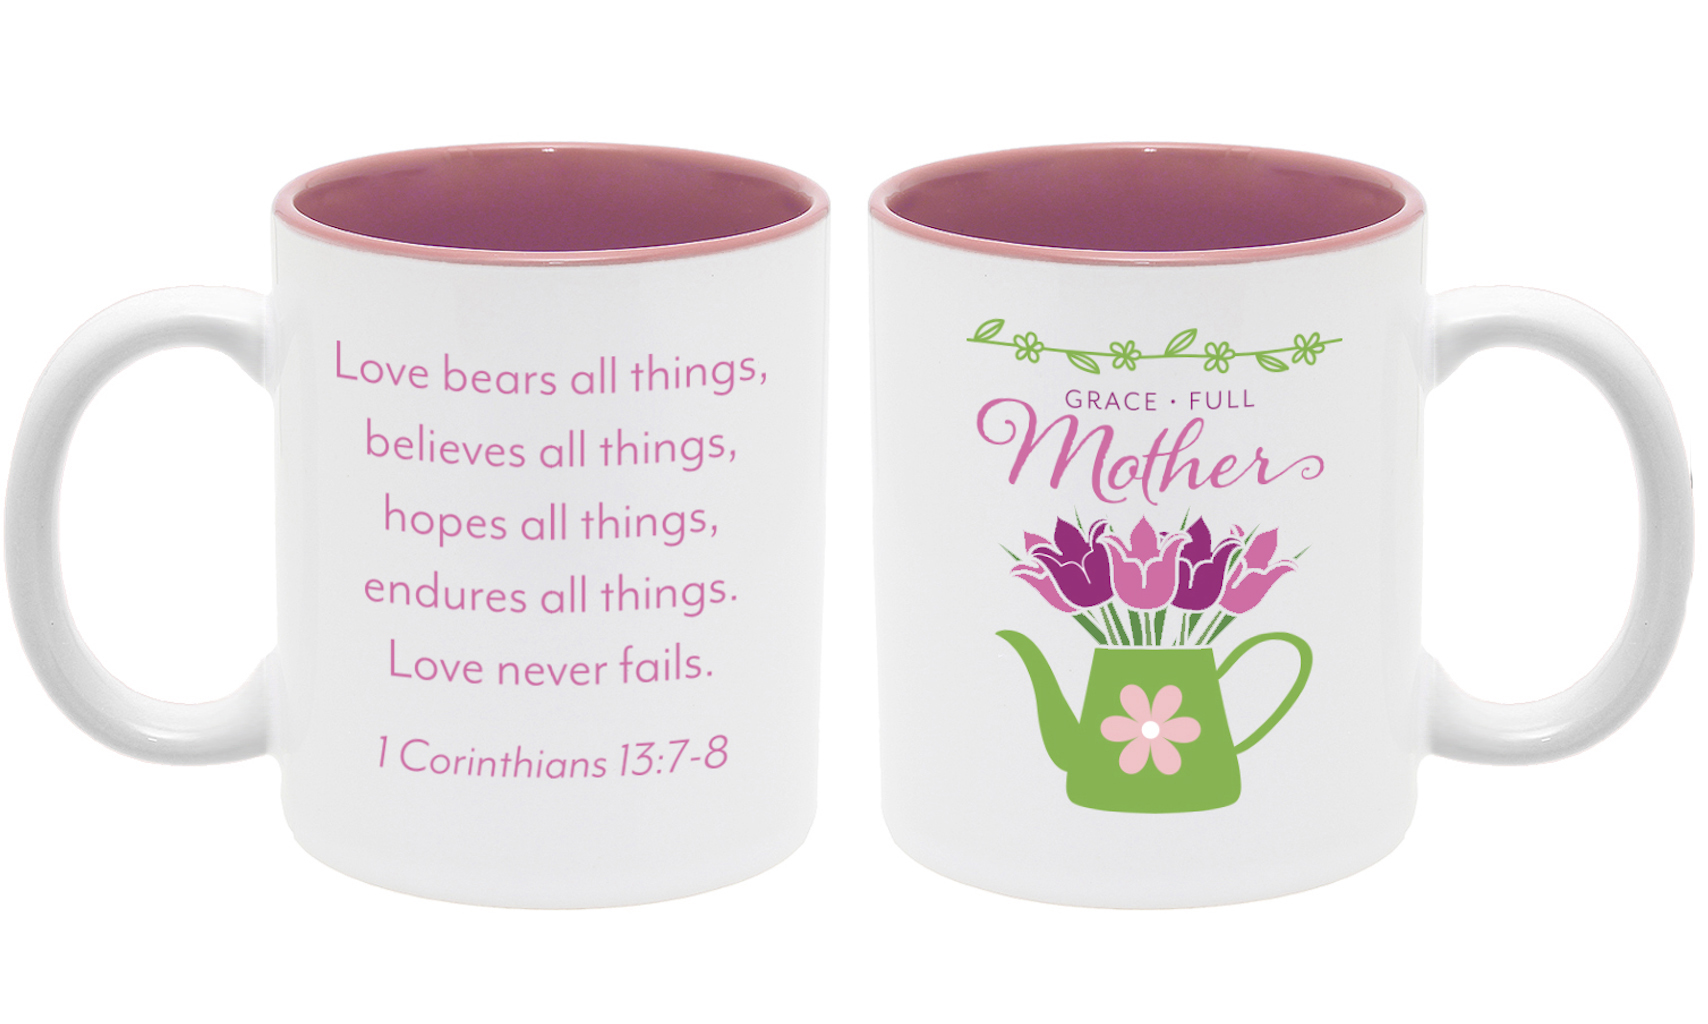 Grace Full Mother Mug - Jpg file